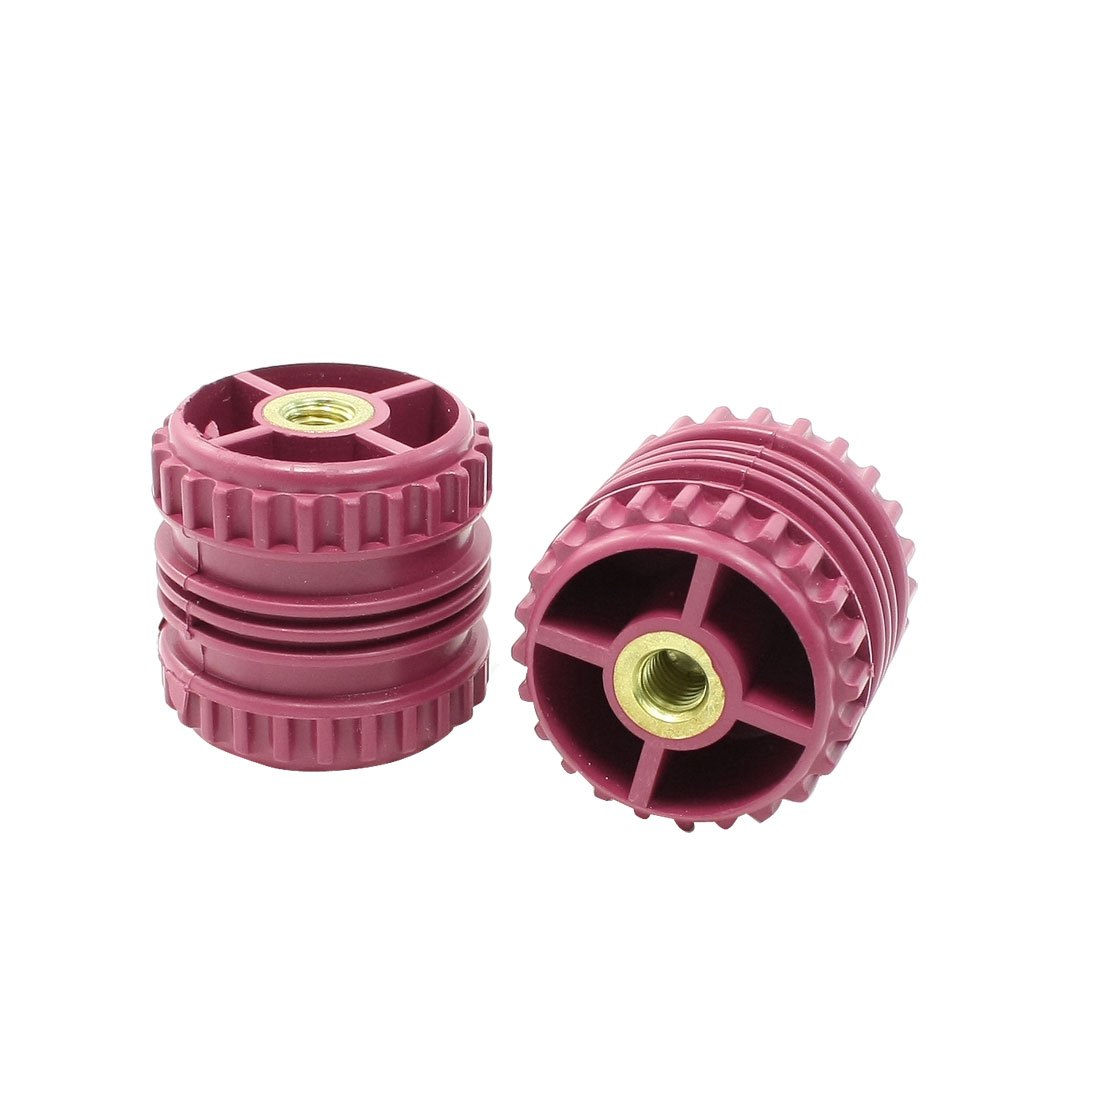 10mm Threaded Dark Red Bus Bar Support Insulator 50mm Height 2 Pcs